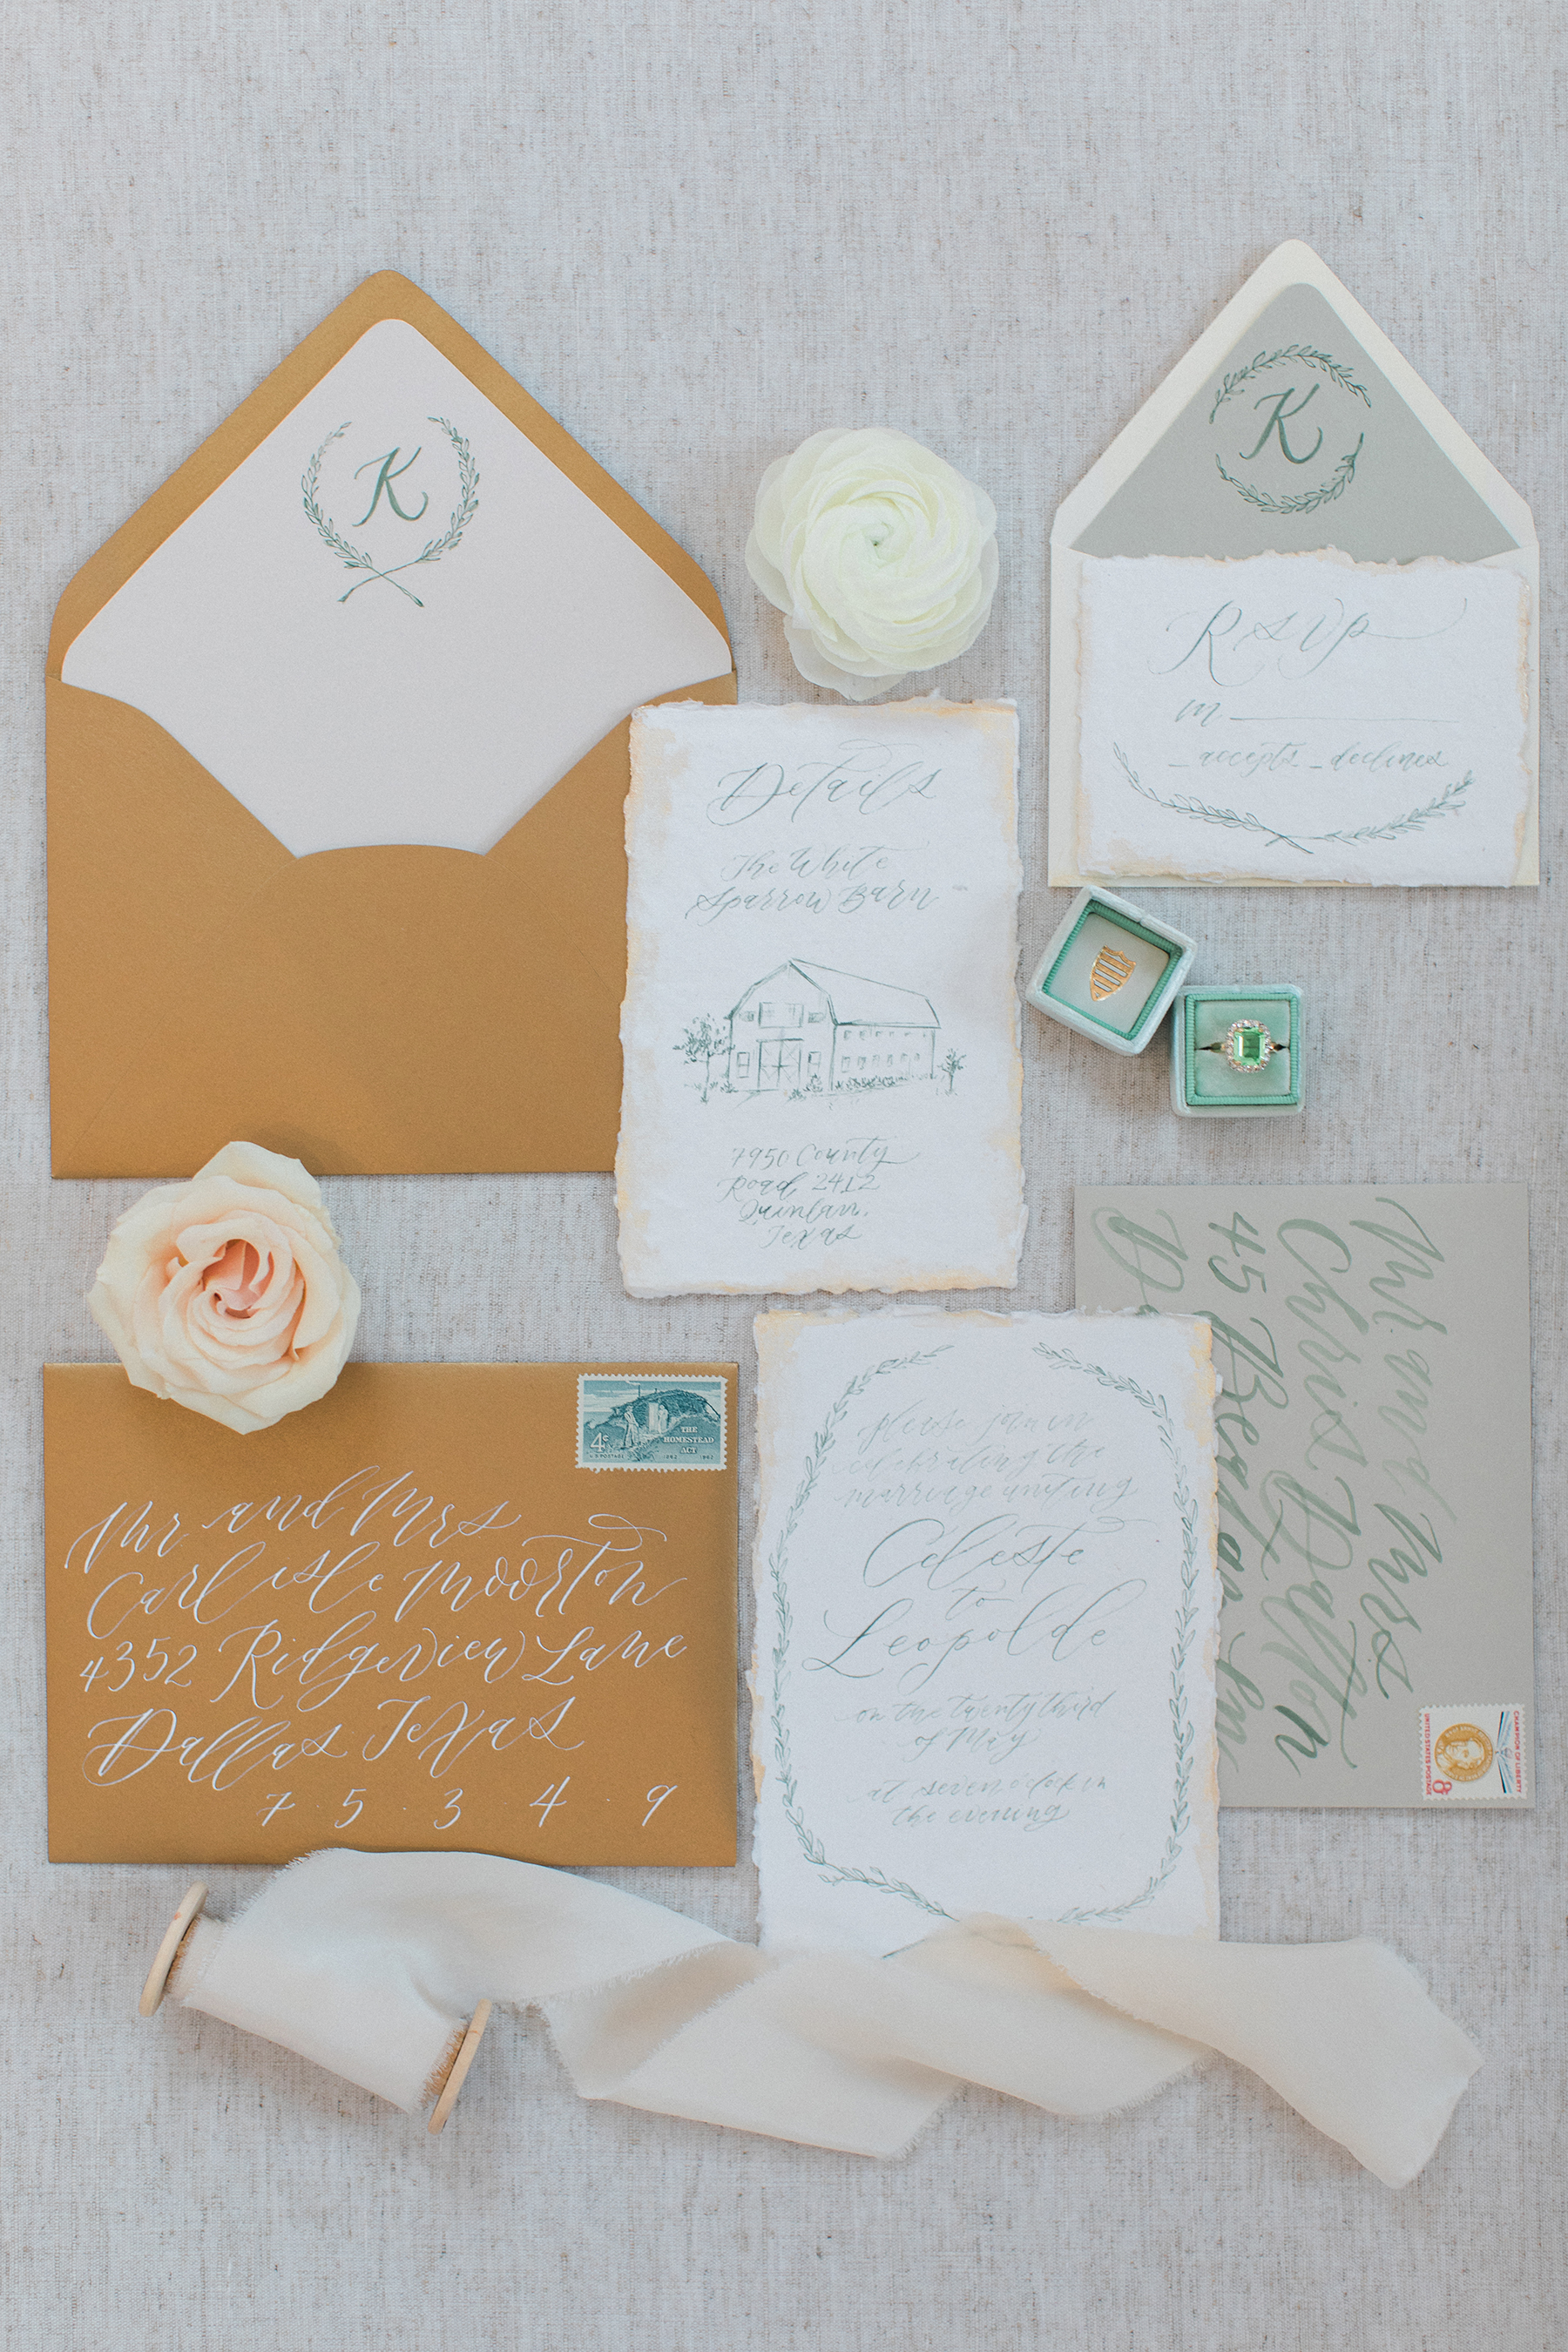 Wedding Barn: White Sparrow | Ethereal Inspiration, Featured on Ruffled